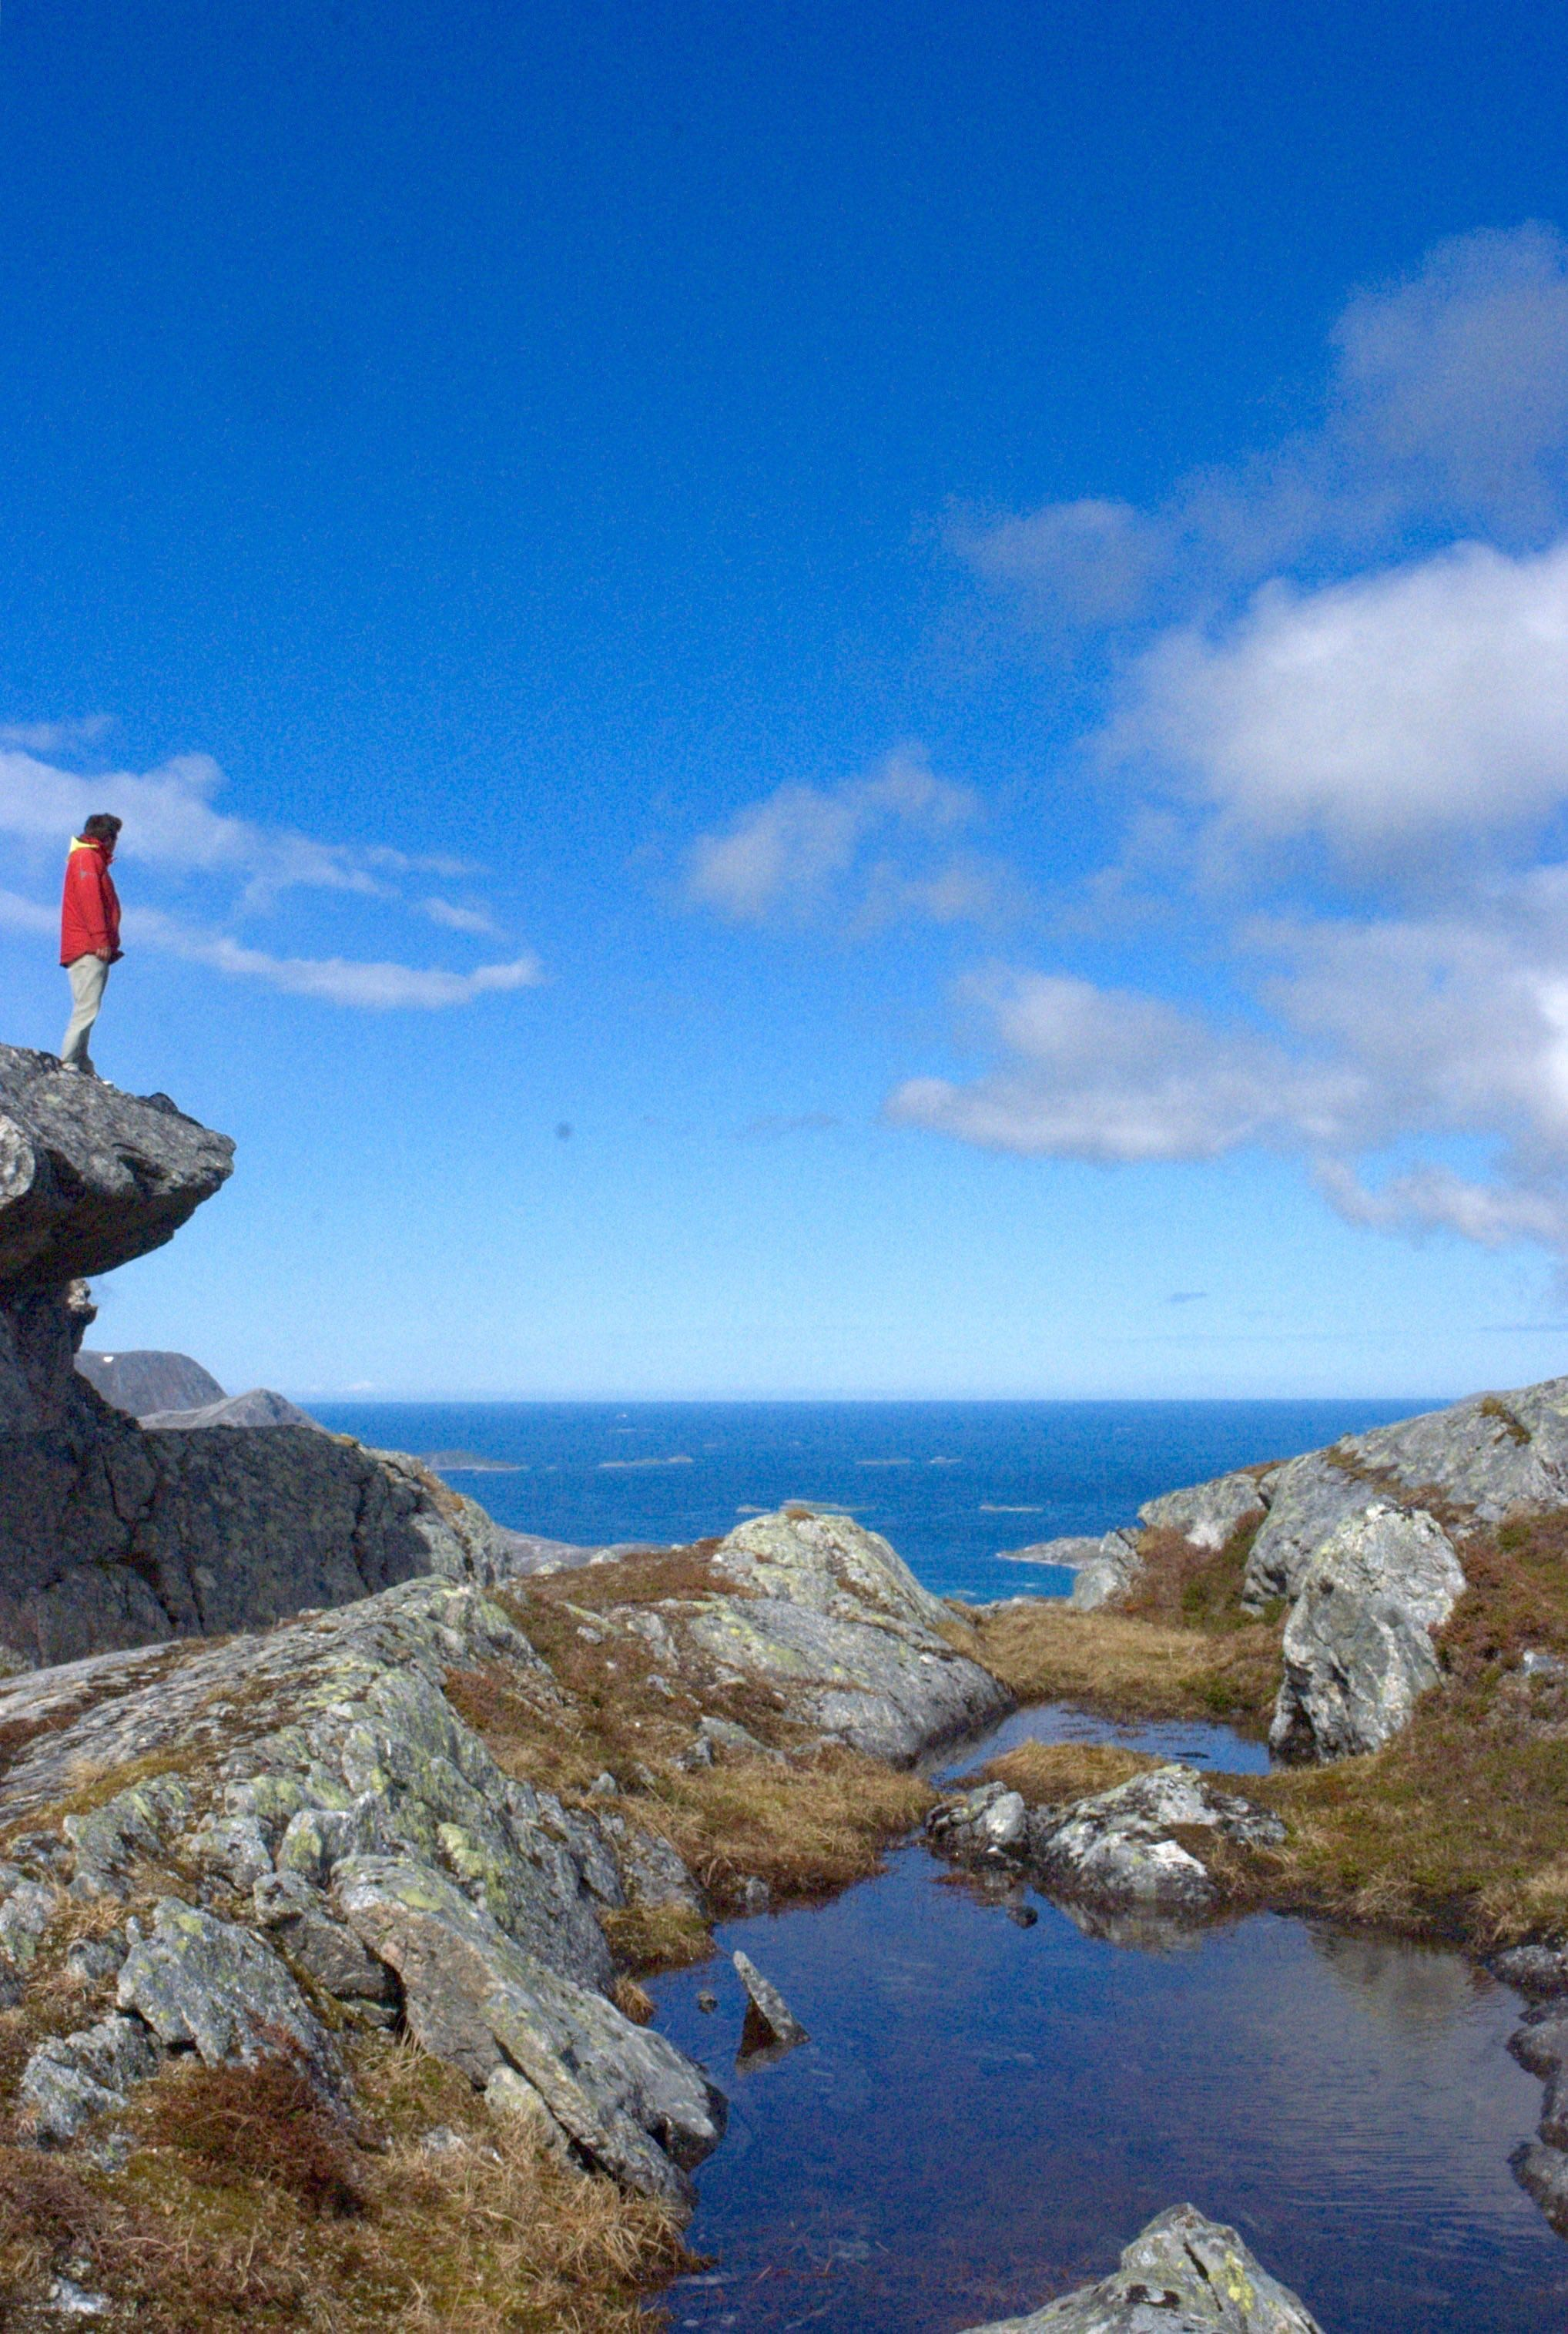 Isabelle Berger,  © Isabelle Berger, Hiking & Sailing trip off the beaten path - 6 days – 69Nord Sommarøy Outdoor Center